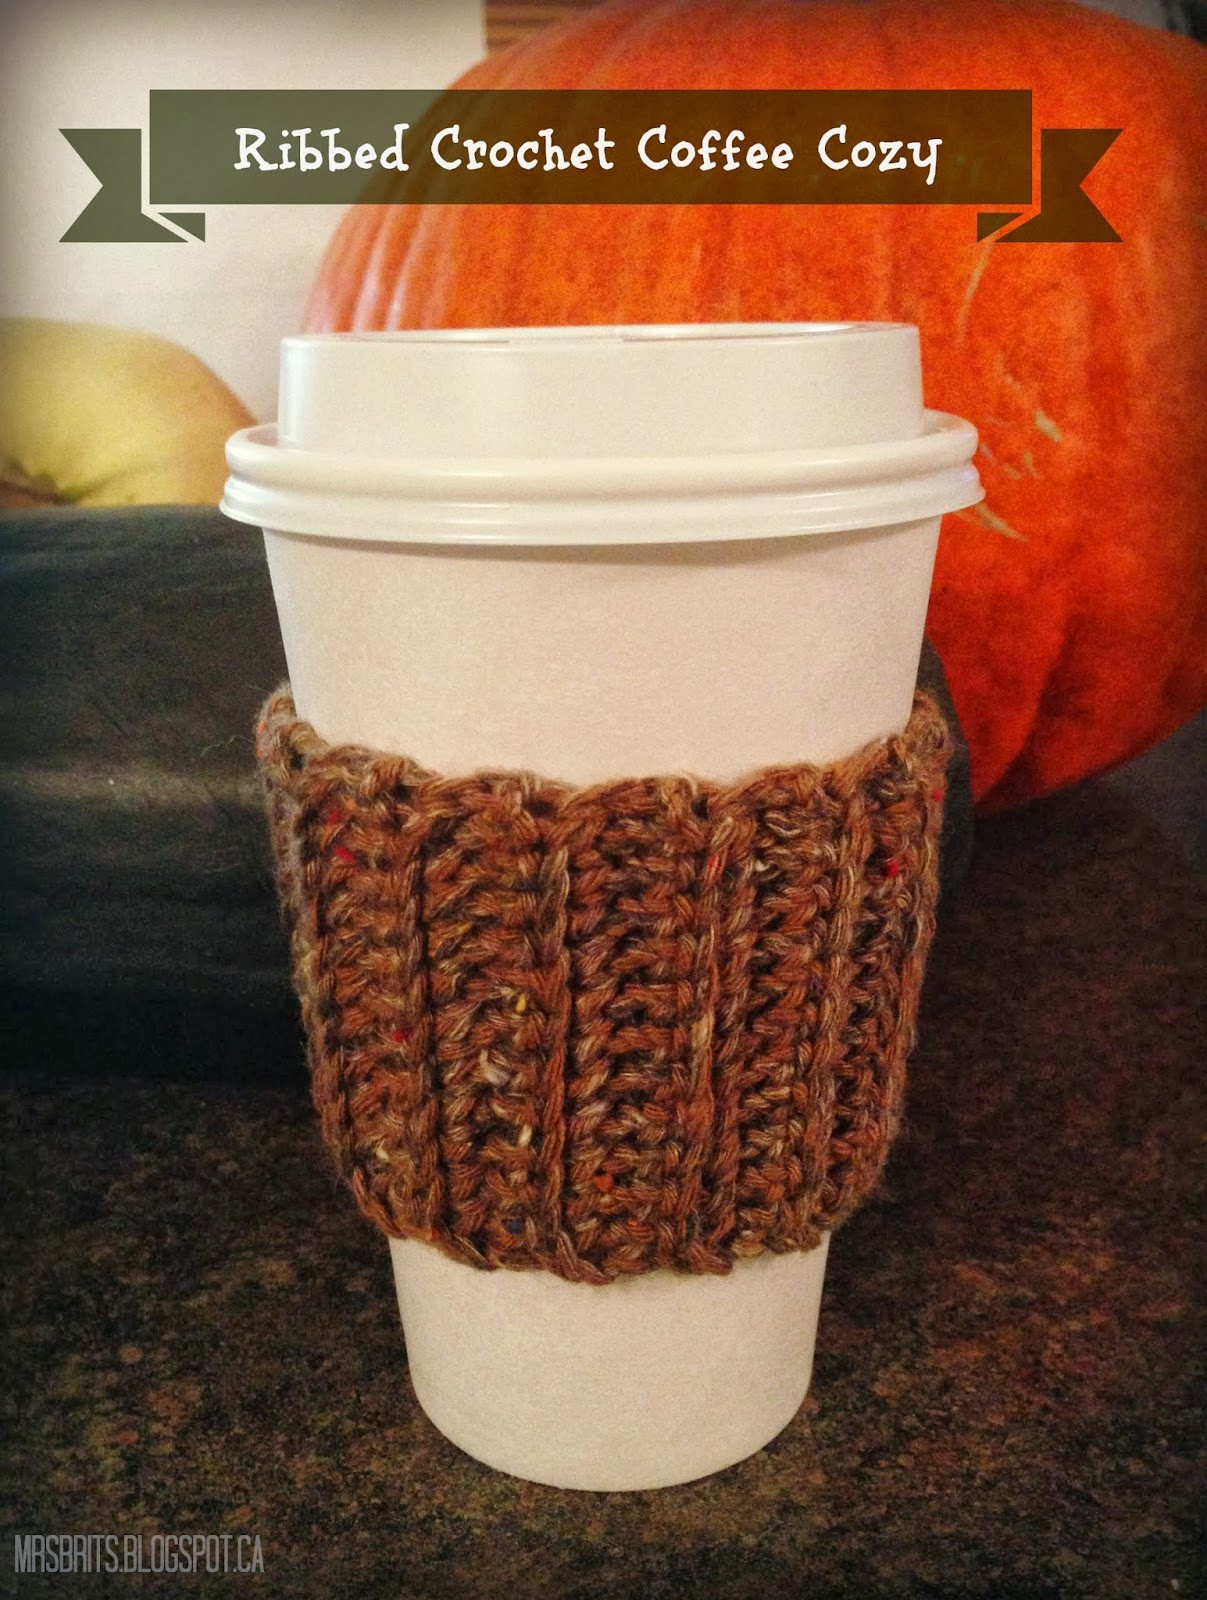 Crochet Coffee Cup Cozy Unique Mrsbrits Ribbed Coffee Cozy Crochet Pattern Of Crochet Coffee Cup Cozy Inspirational 35 Easy Crochet Patterns